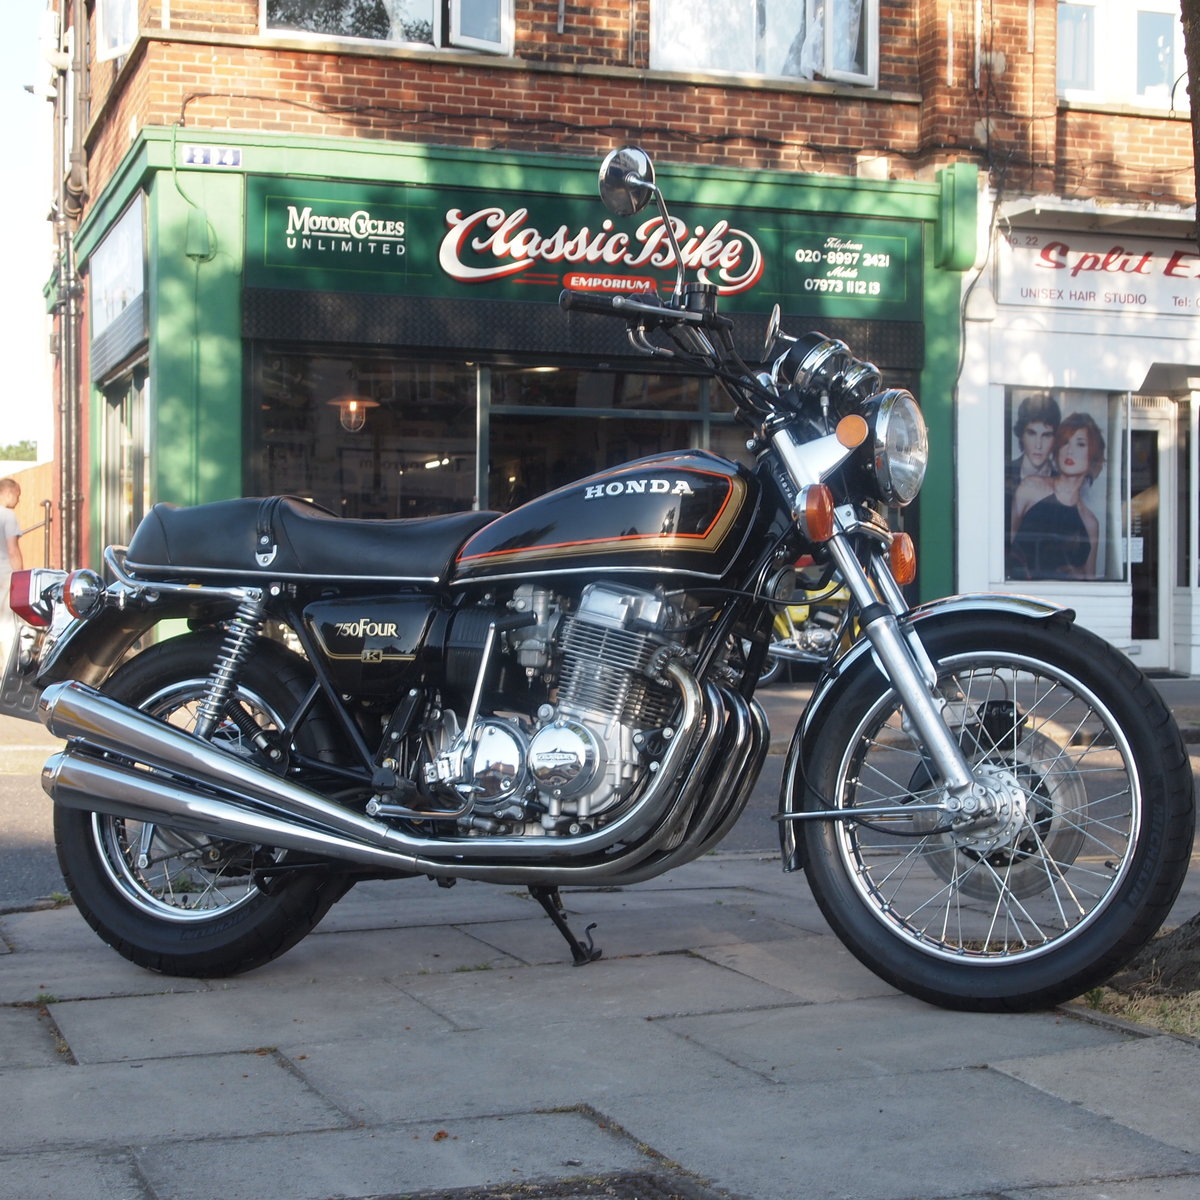 1978 Honda CB750 K8 5703 Miles, RESERVED FOR LOUIS & ANTOINETTE. SOLD (picture 5 of 6)